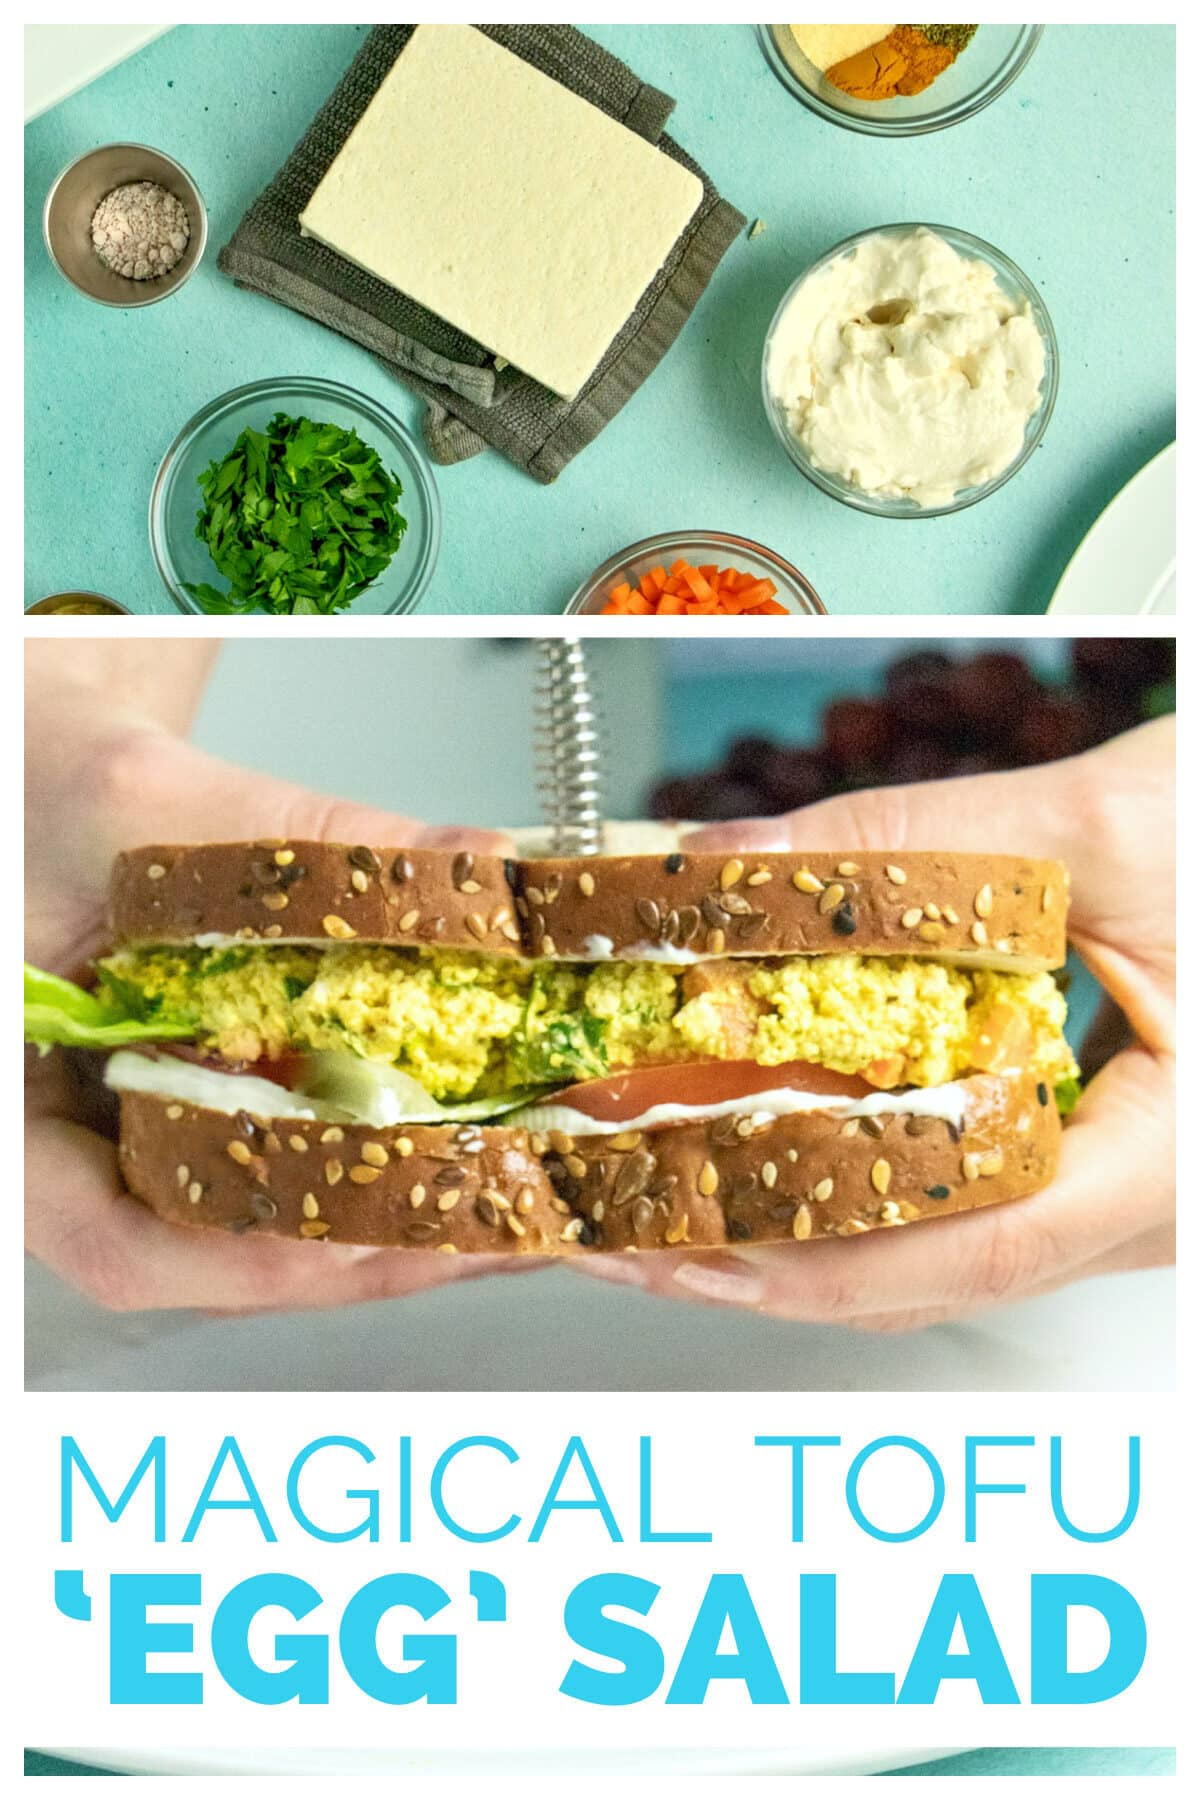 image collage of tofu salad ingredients and hands holding a sandwich, text overlay